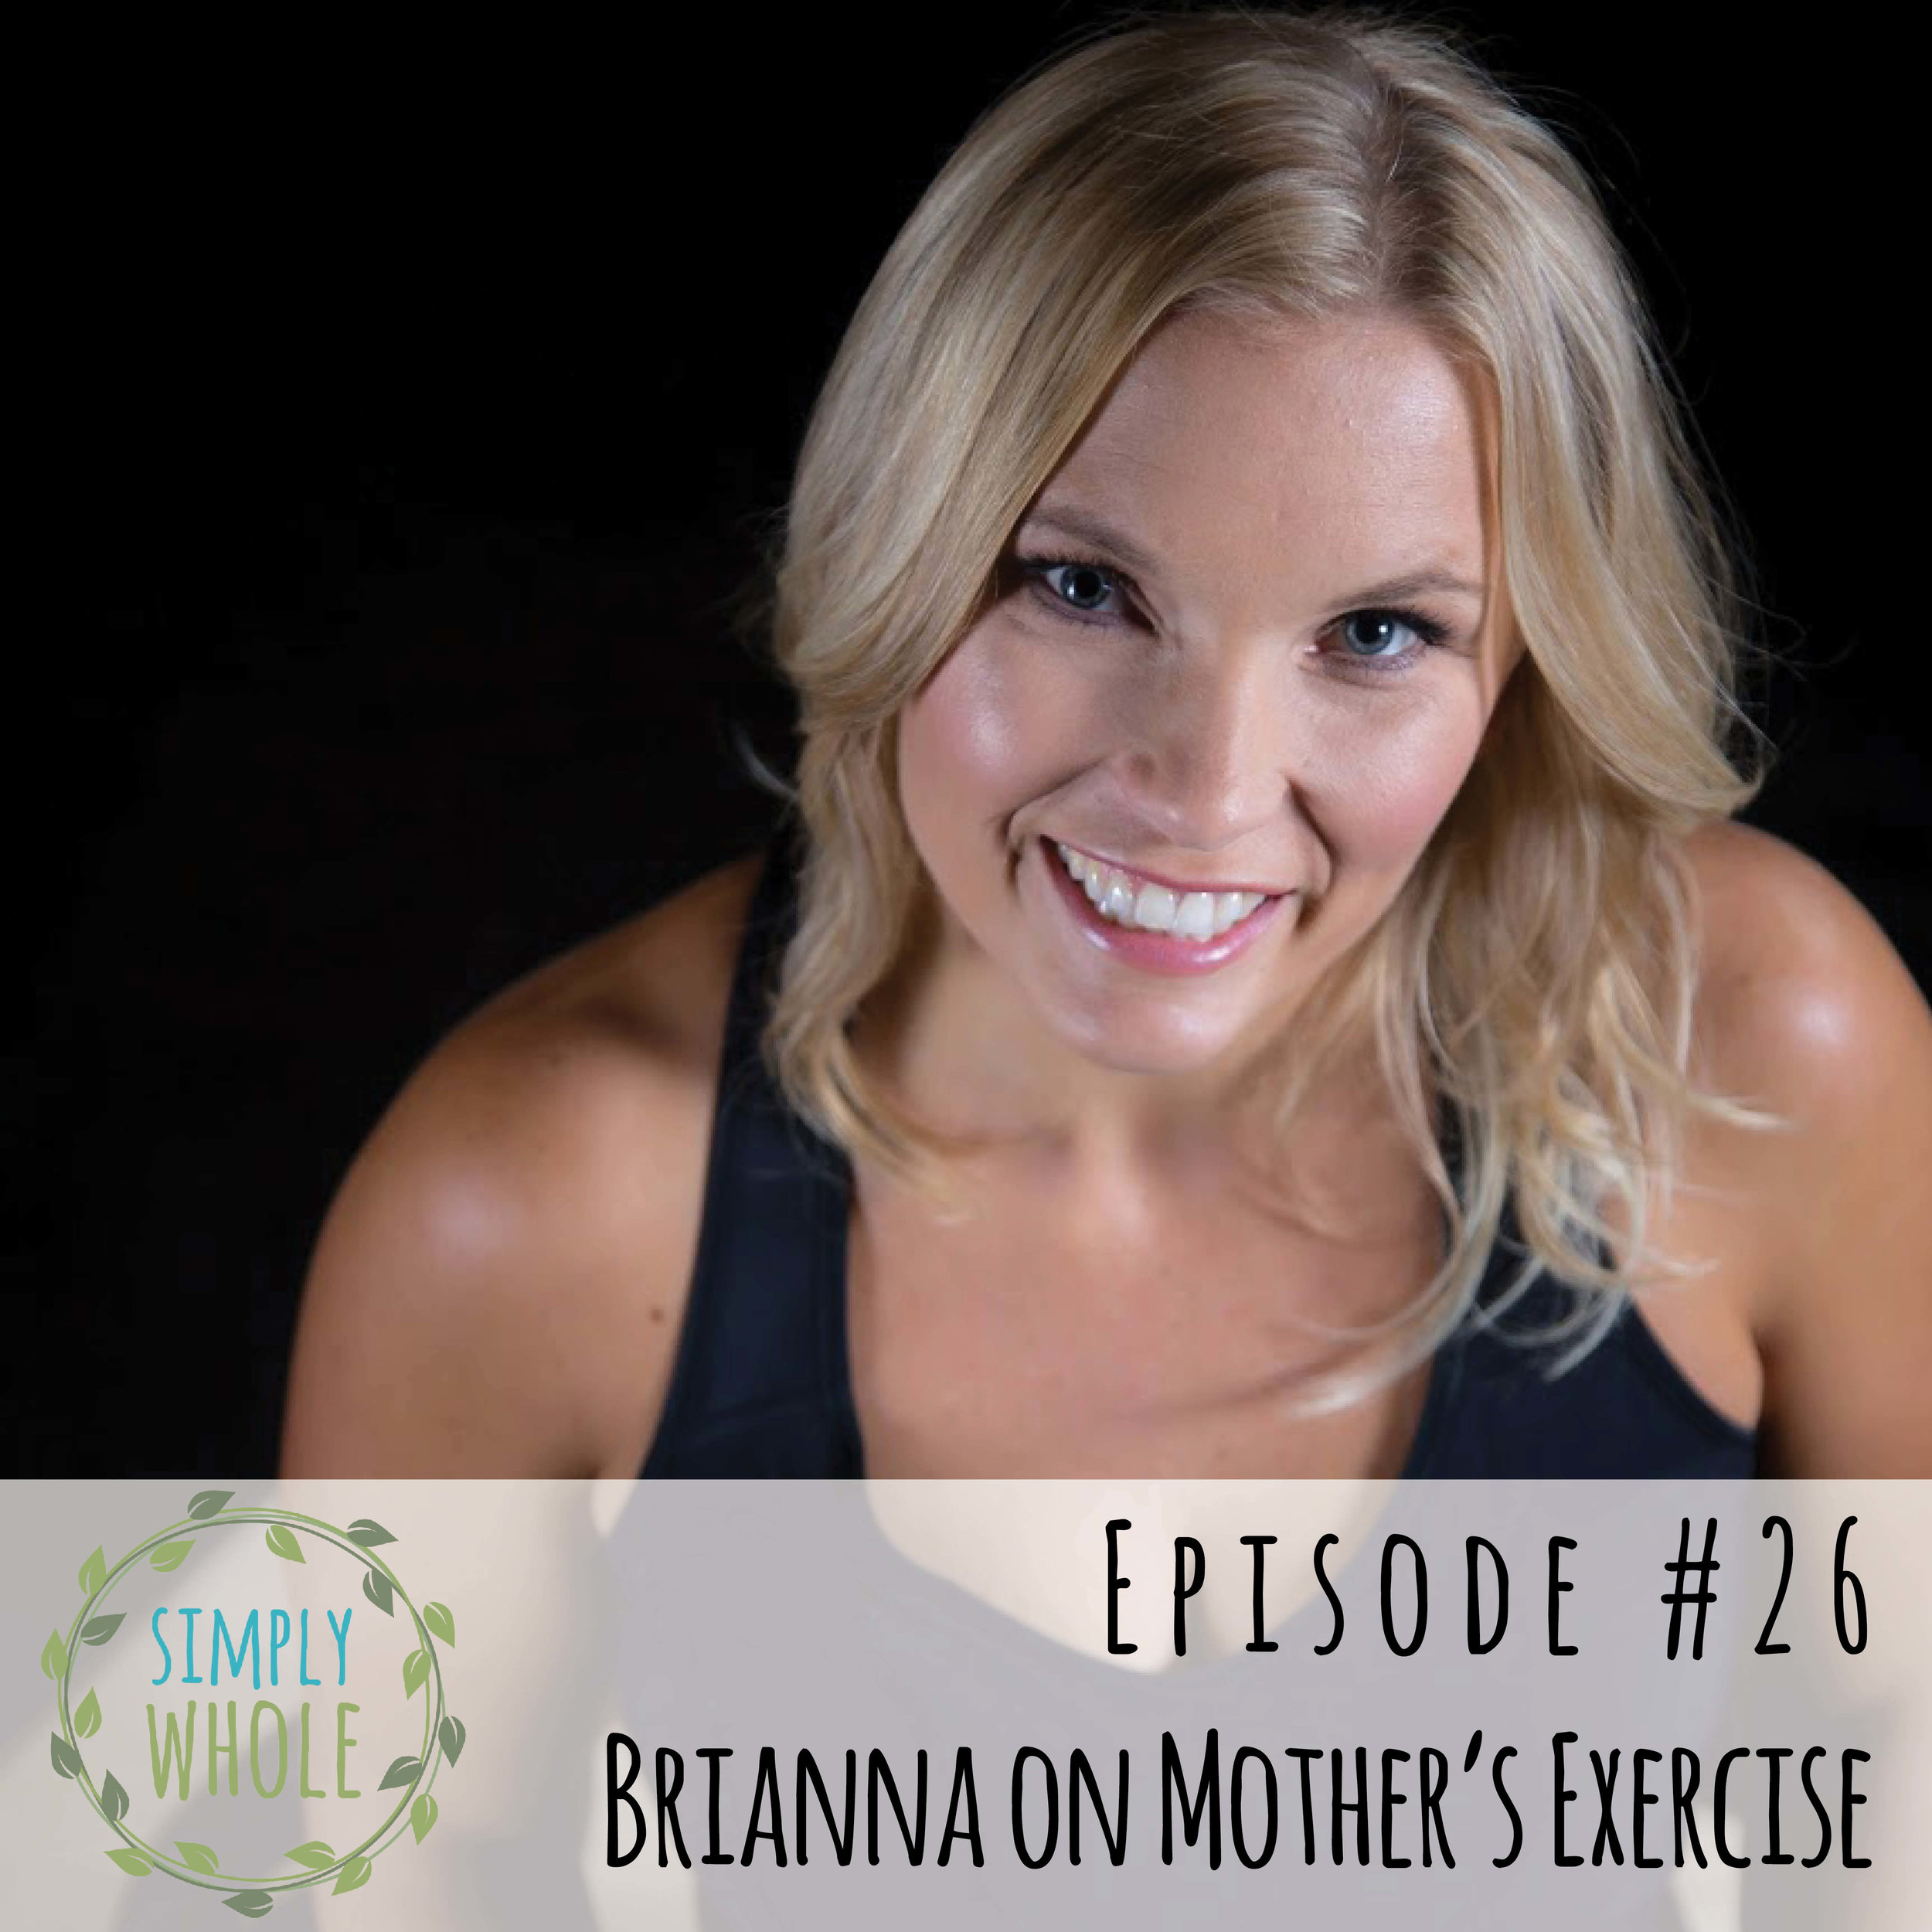 Brianna on Pregnancy & Postdardum Exercise